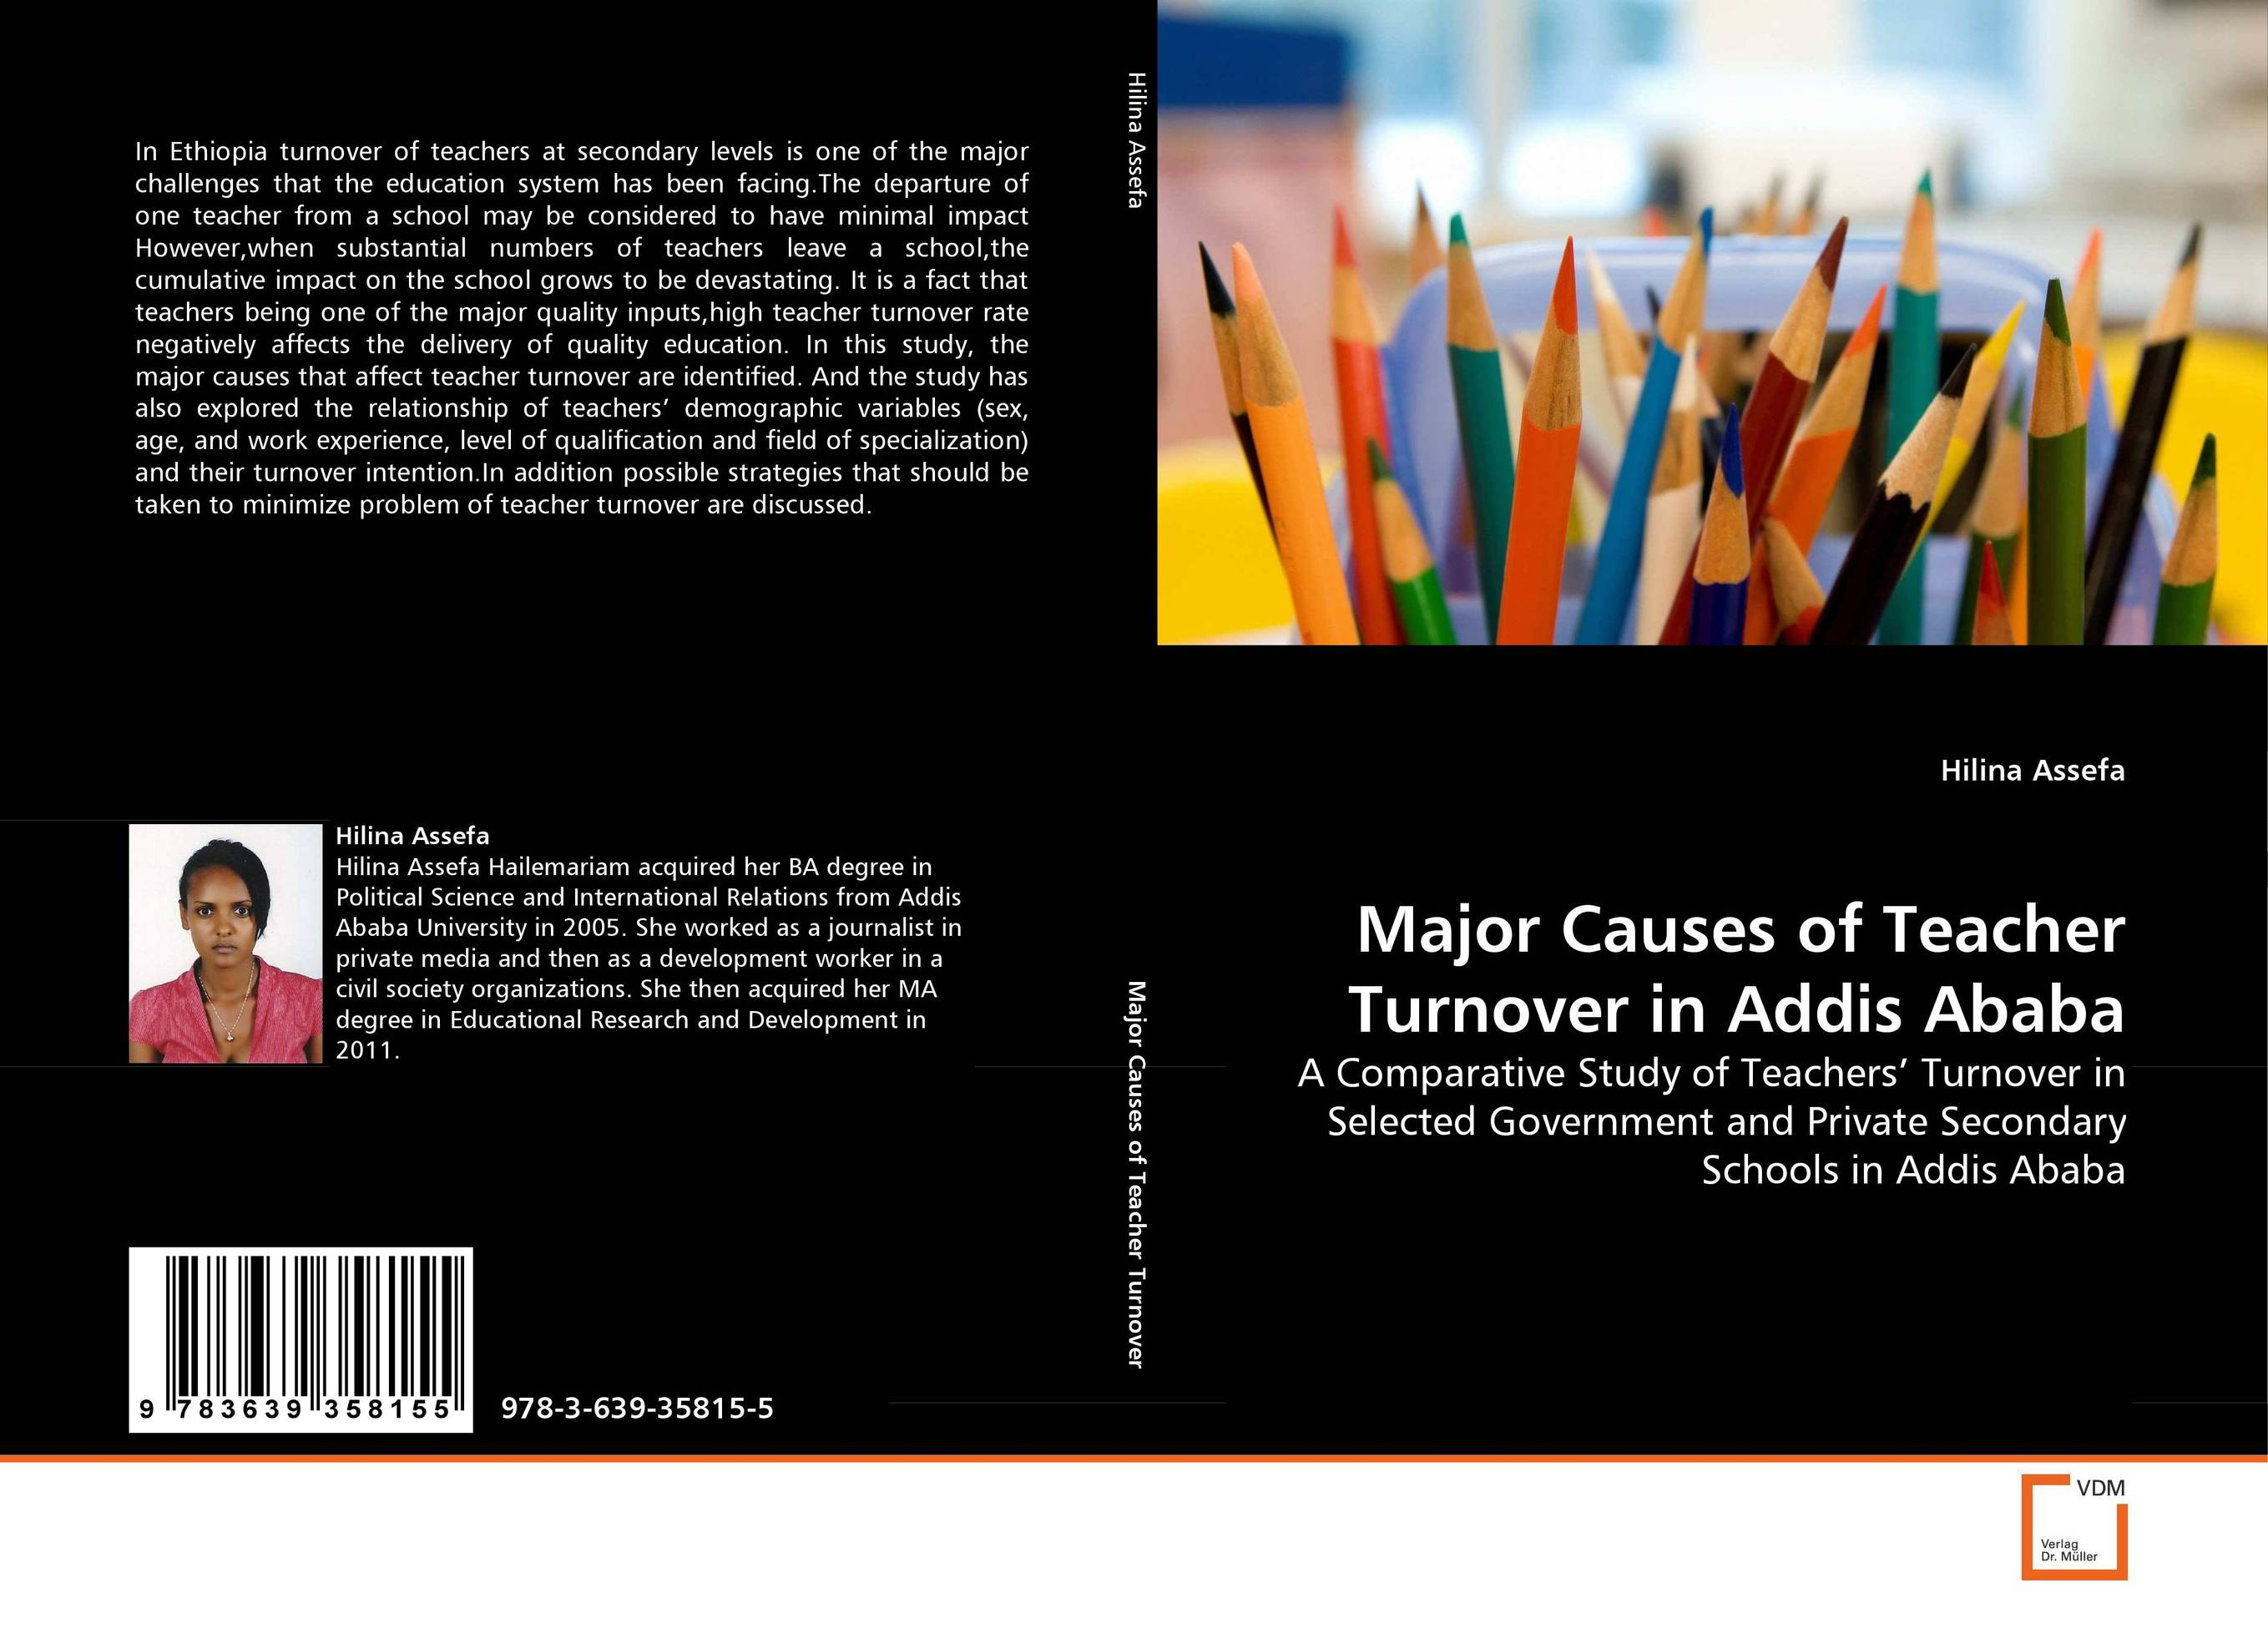 Major Causes of Teacher Turnover in Addis Ababa work experience education for teachers